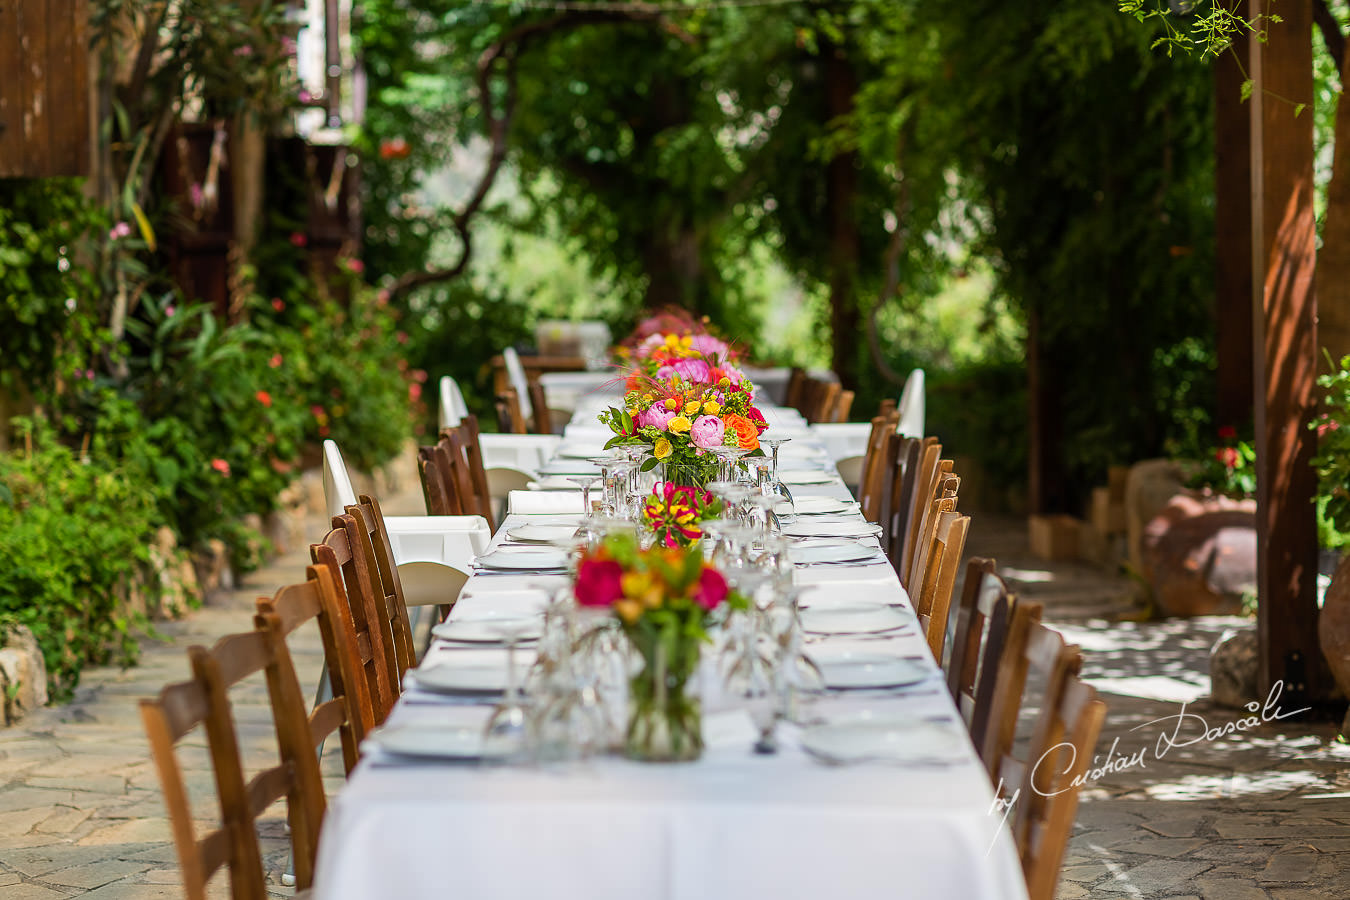 A beautiful wedding day at the Vasilias Nikoklis Inn in Paphos, captured by Cristian Dascalu. The dinner table.